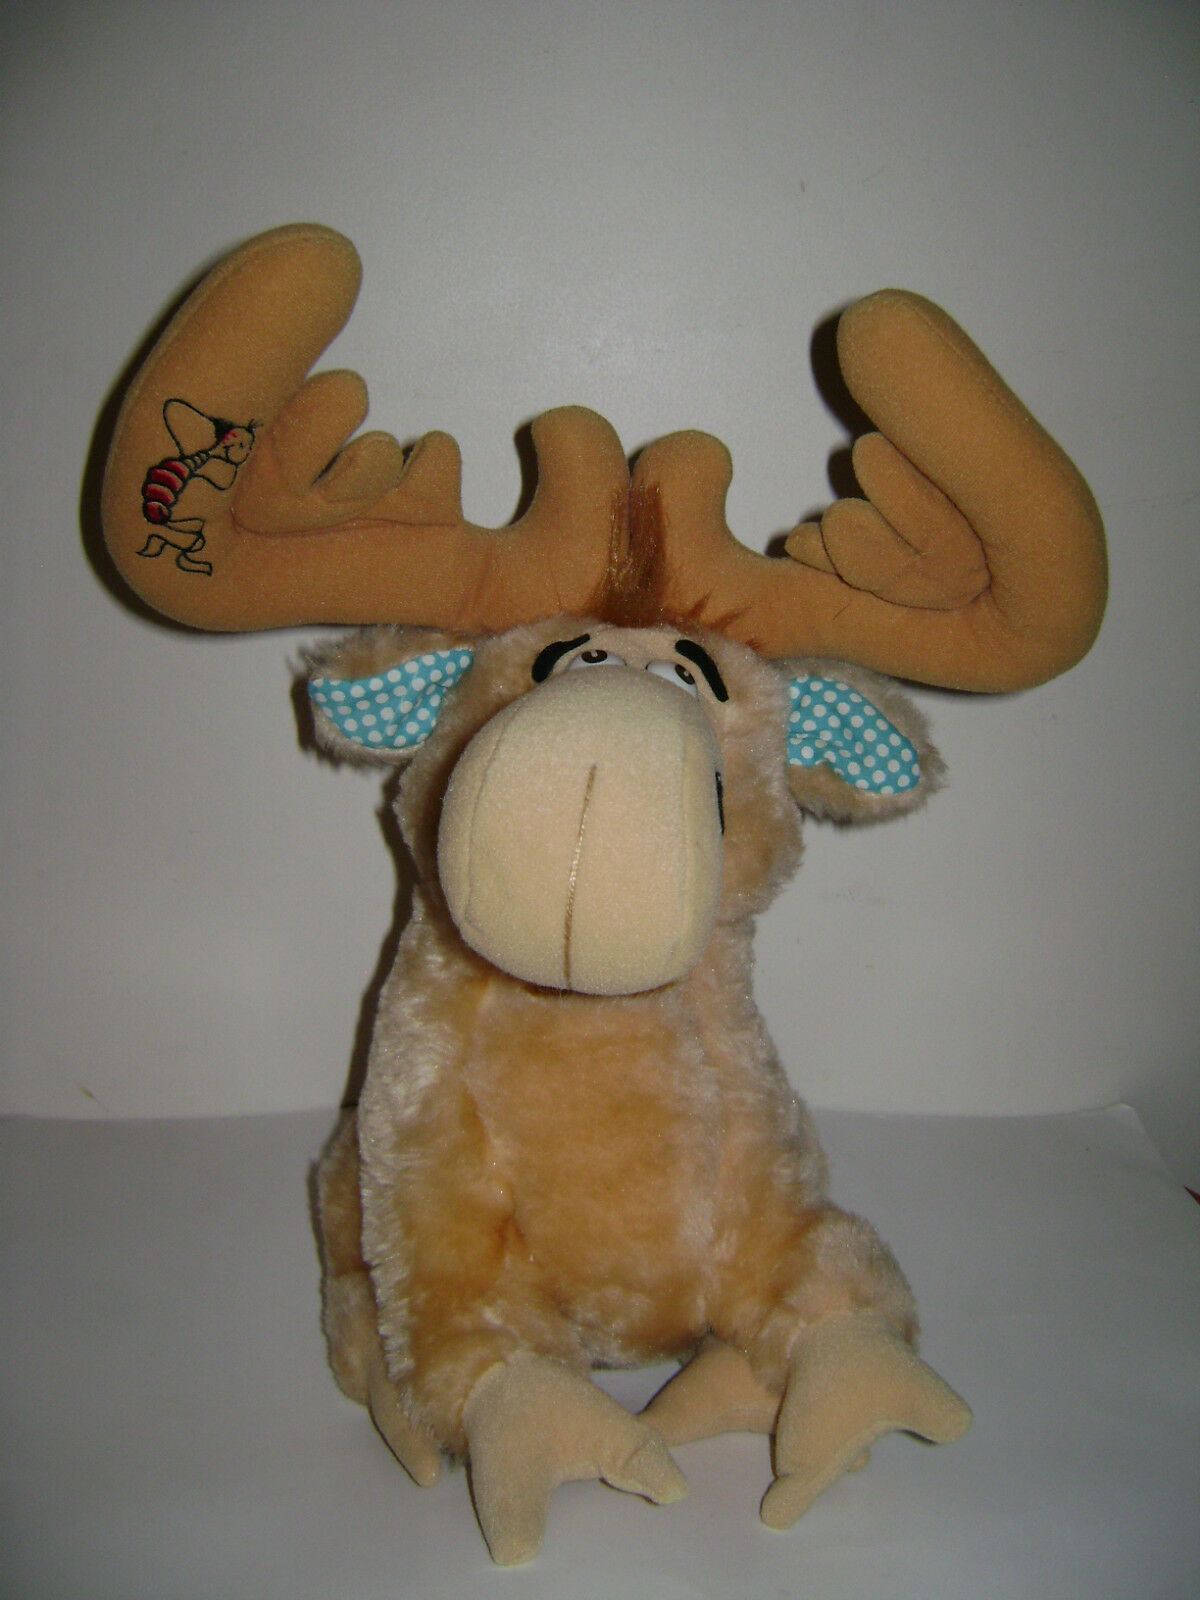 1983 DR. SEUSS MOOSE PLUSH TOY STUFFED ANIMAL TAN GoldEN THIDWICK BIG HEARTED